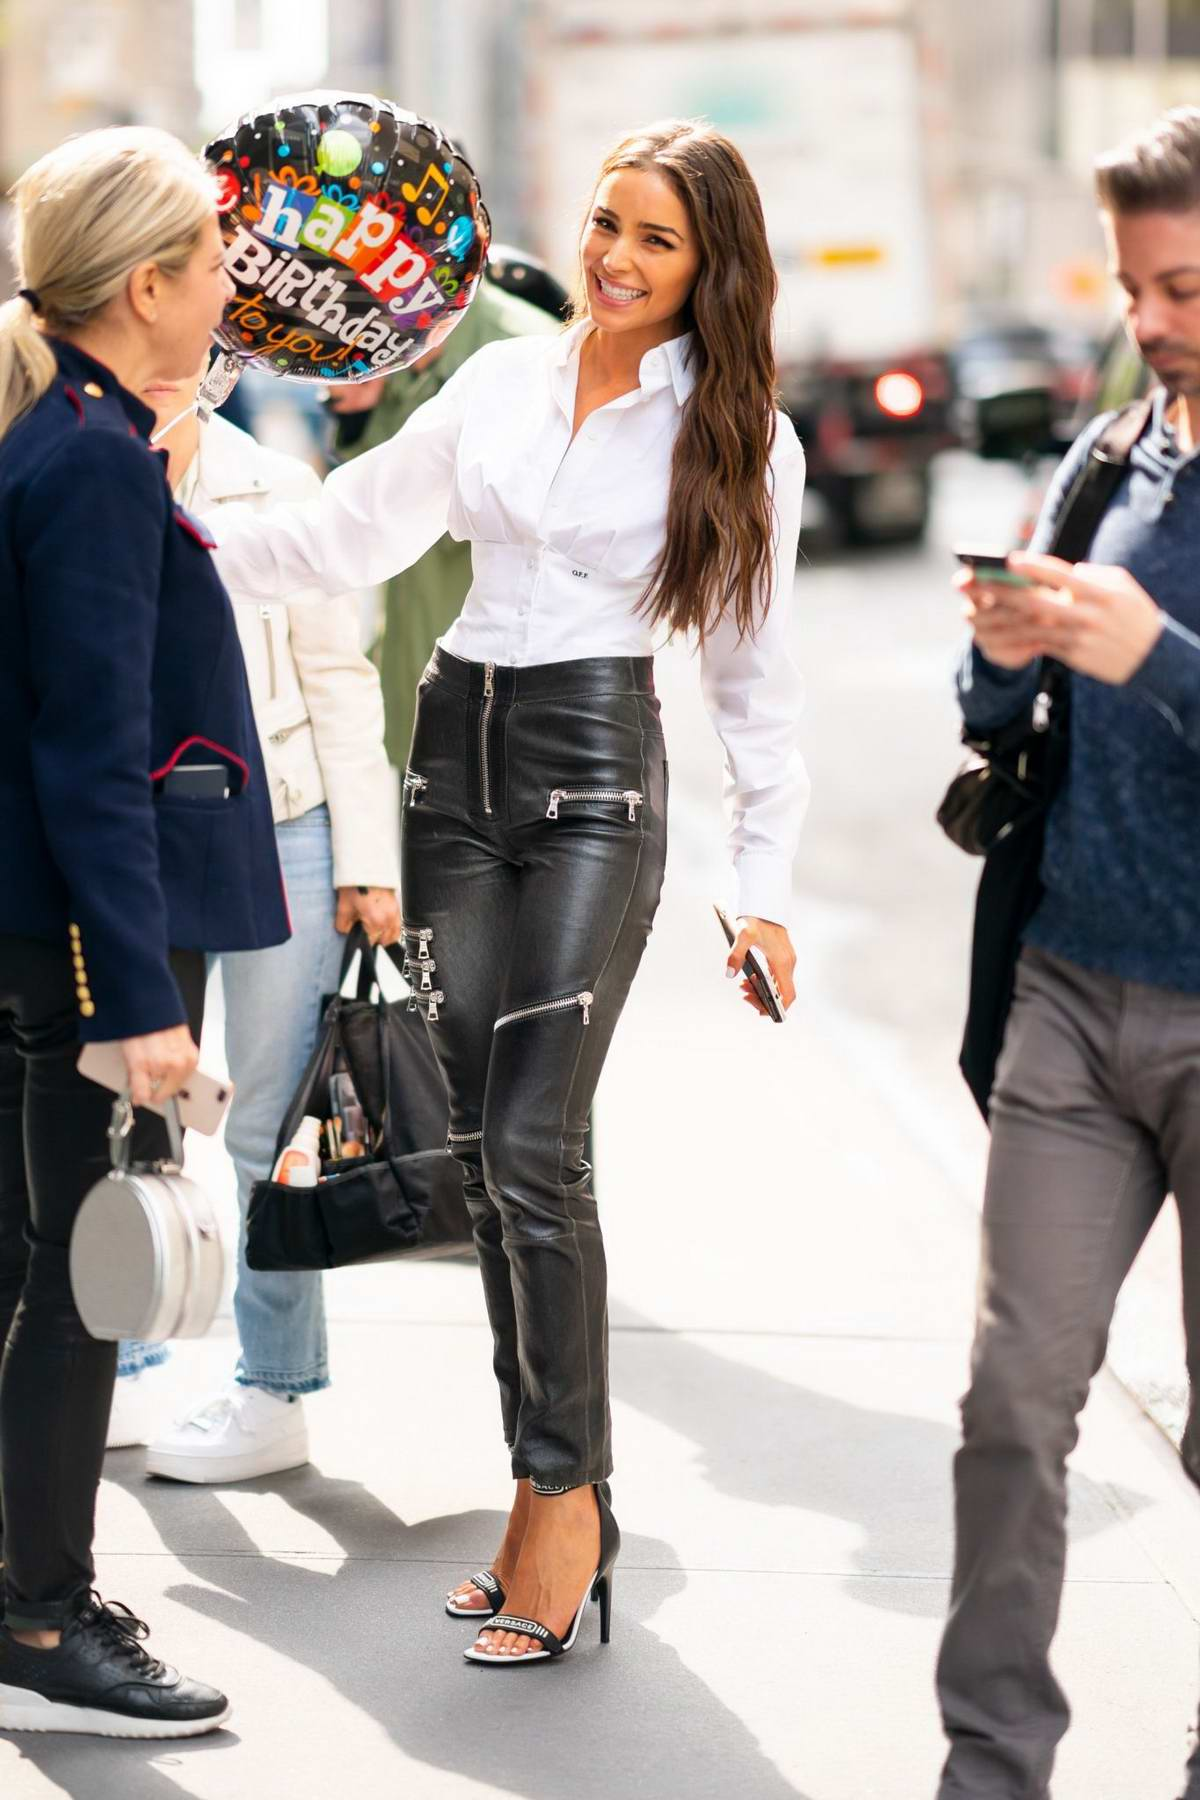 Olivia Culpo looks dapper in a white shirt and black leather pants as she steps out on her birthday in Midtown, New York City